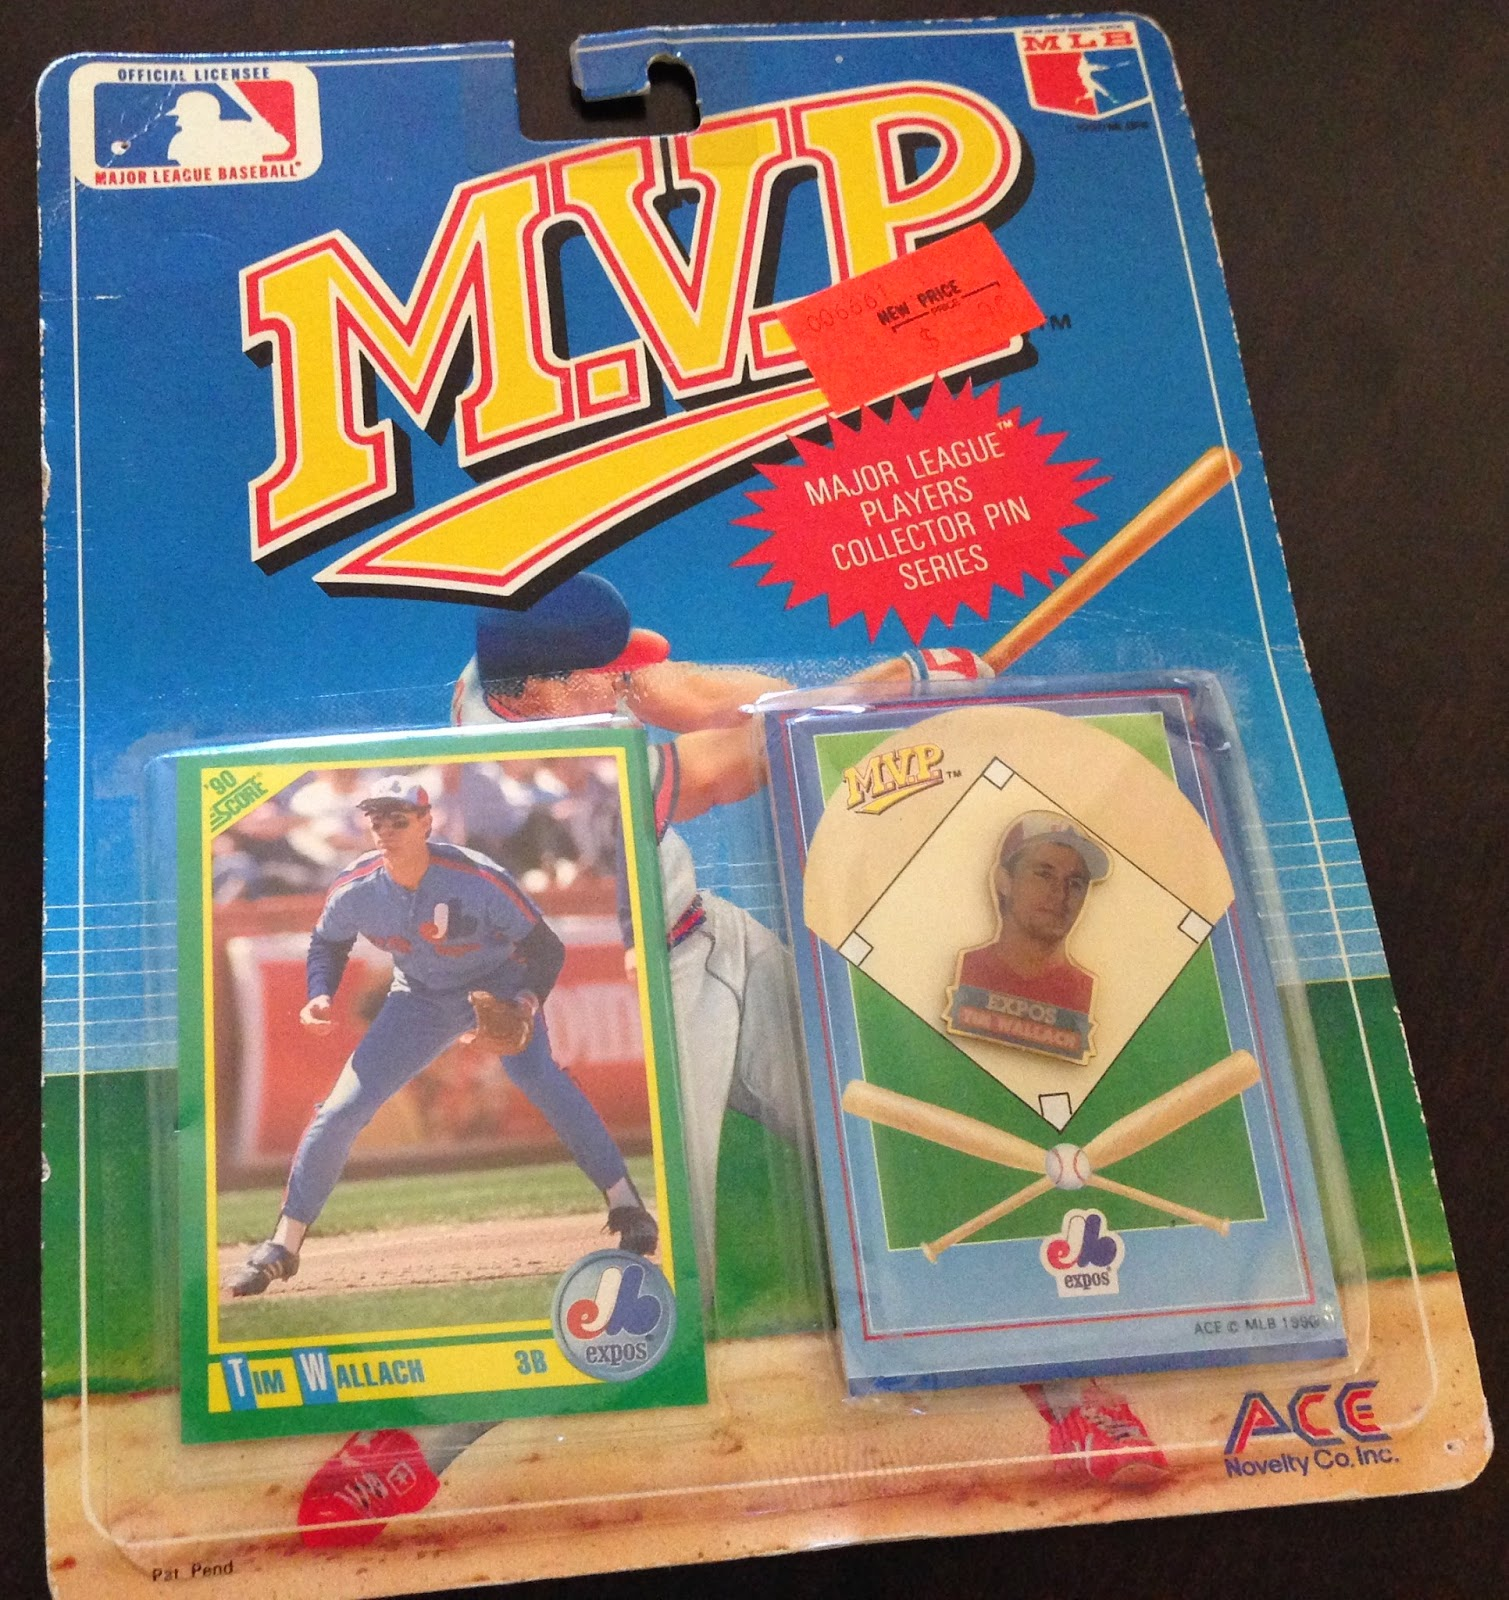 i remember buying this at a toys r us as a kid i actually bought or was bought by mother two of them which at the time felt like a huge windfall